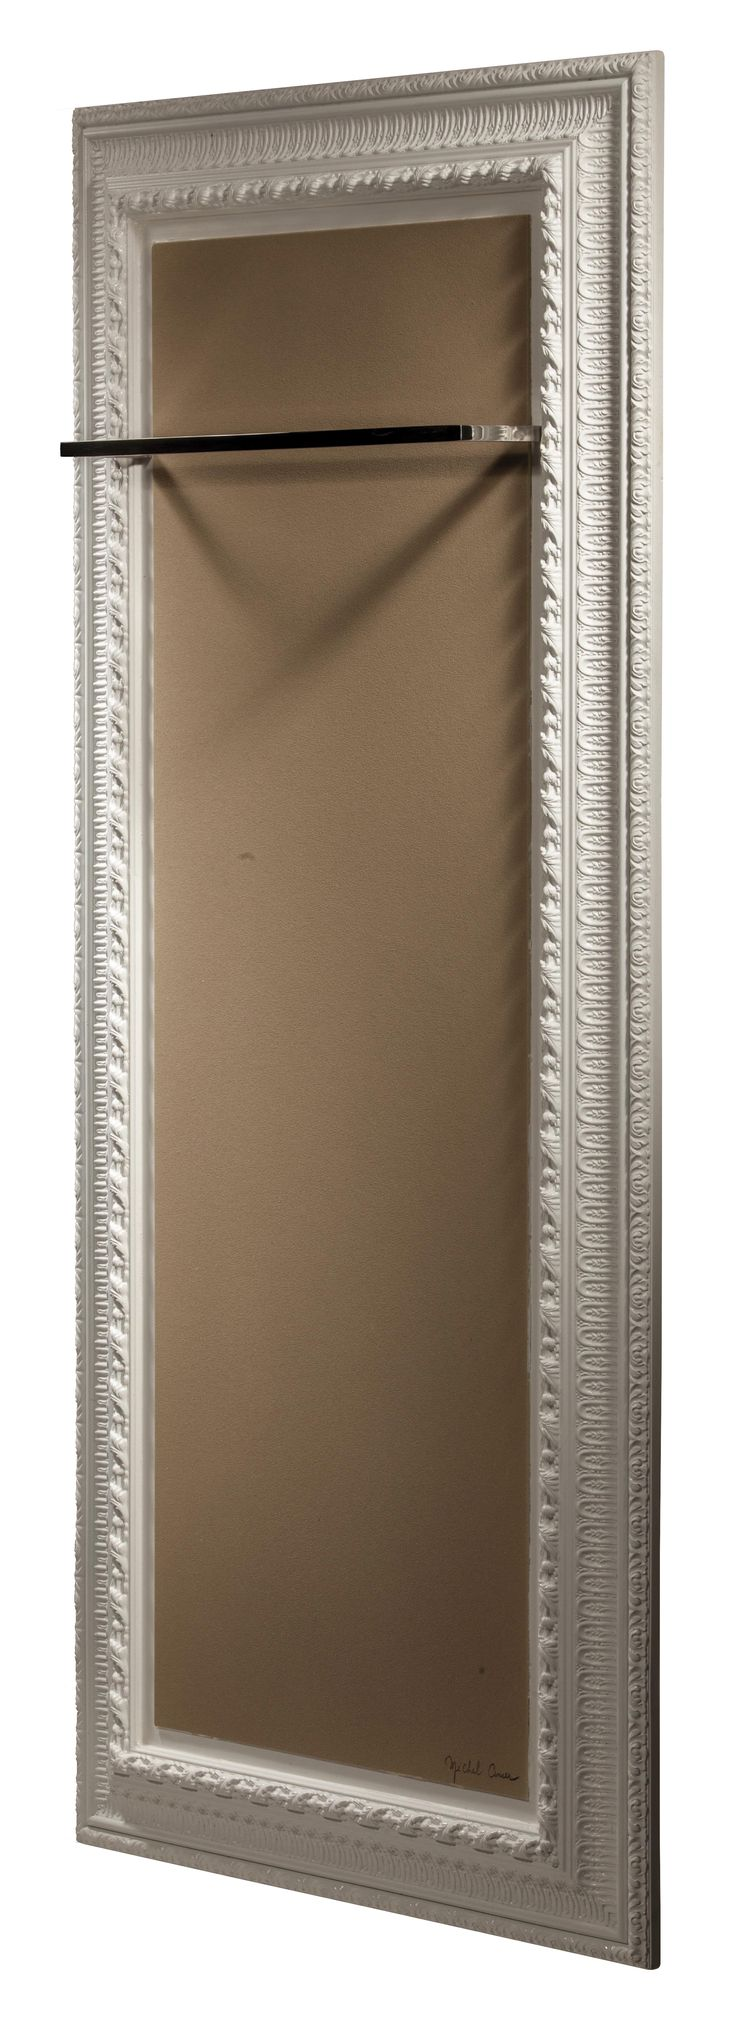 A Towel Warmer With A Design Inspired From The French Monarchy #Towelwarmer  #radiator #